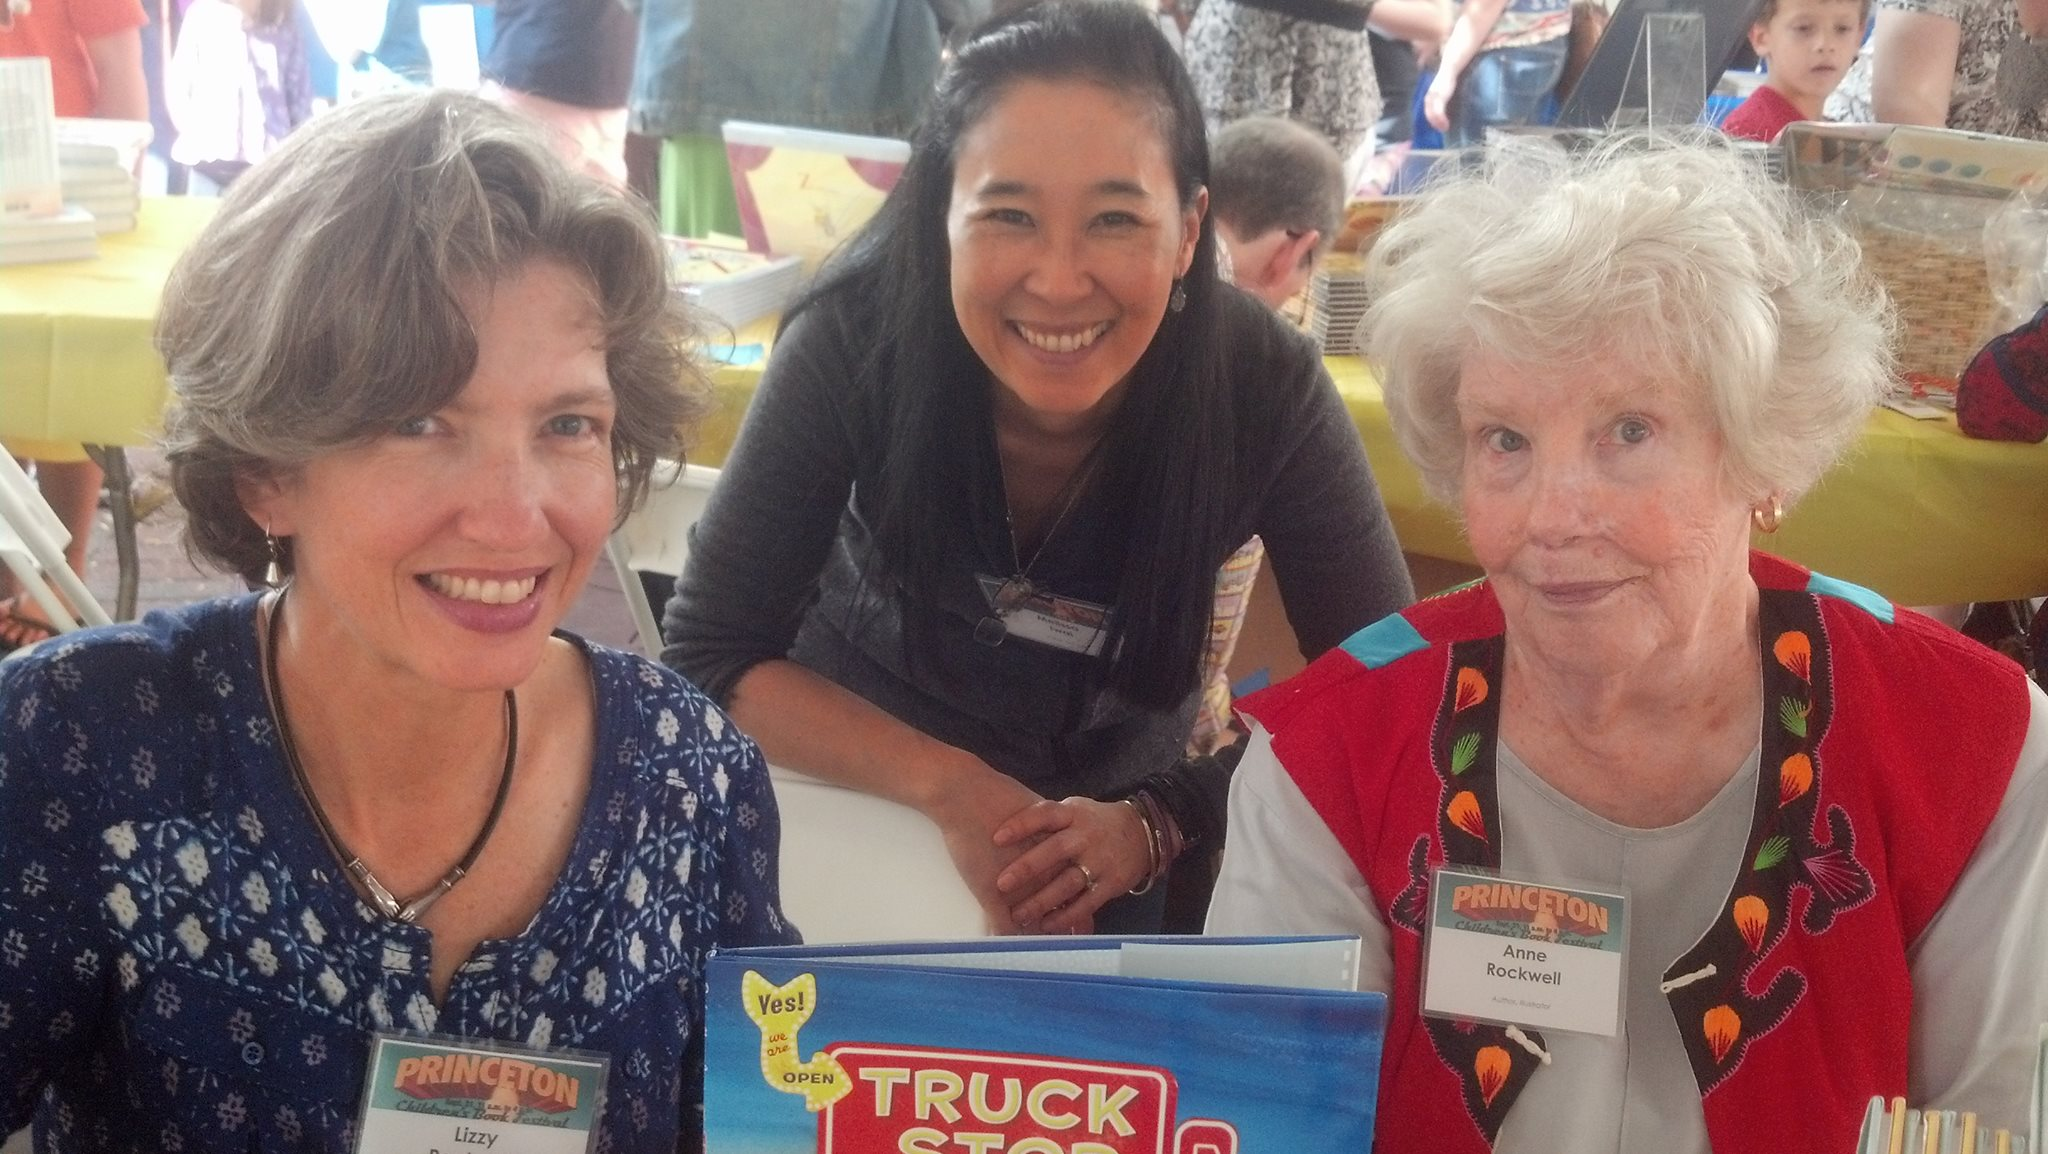 Lizzy Rockwell, me, and Anne Rockwell at the Princeton Book Festival